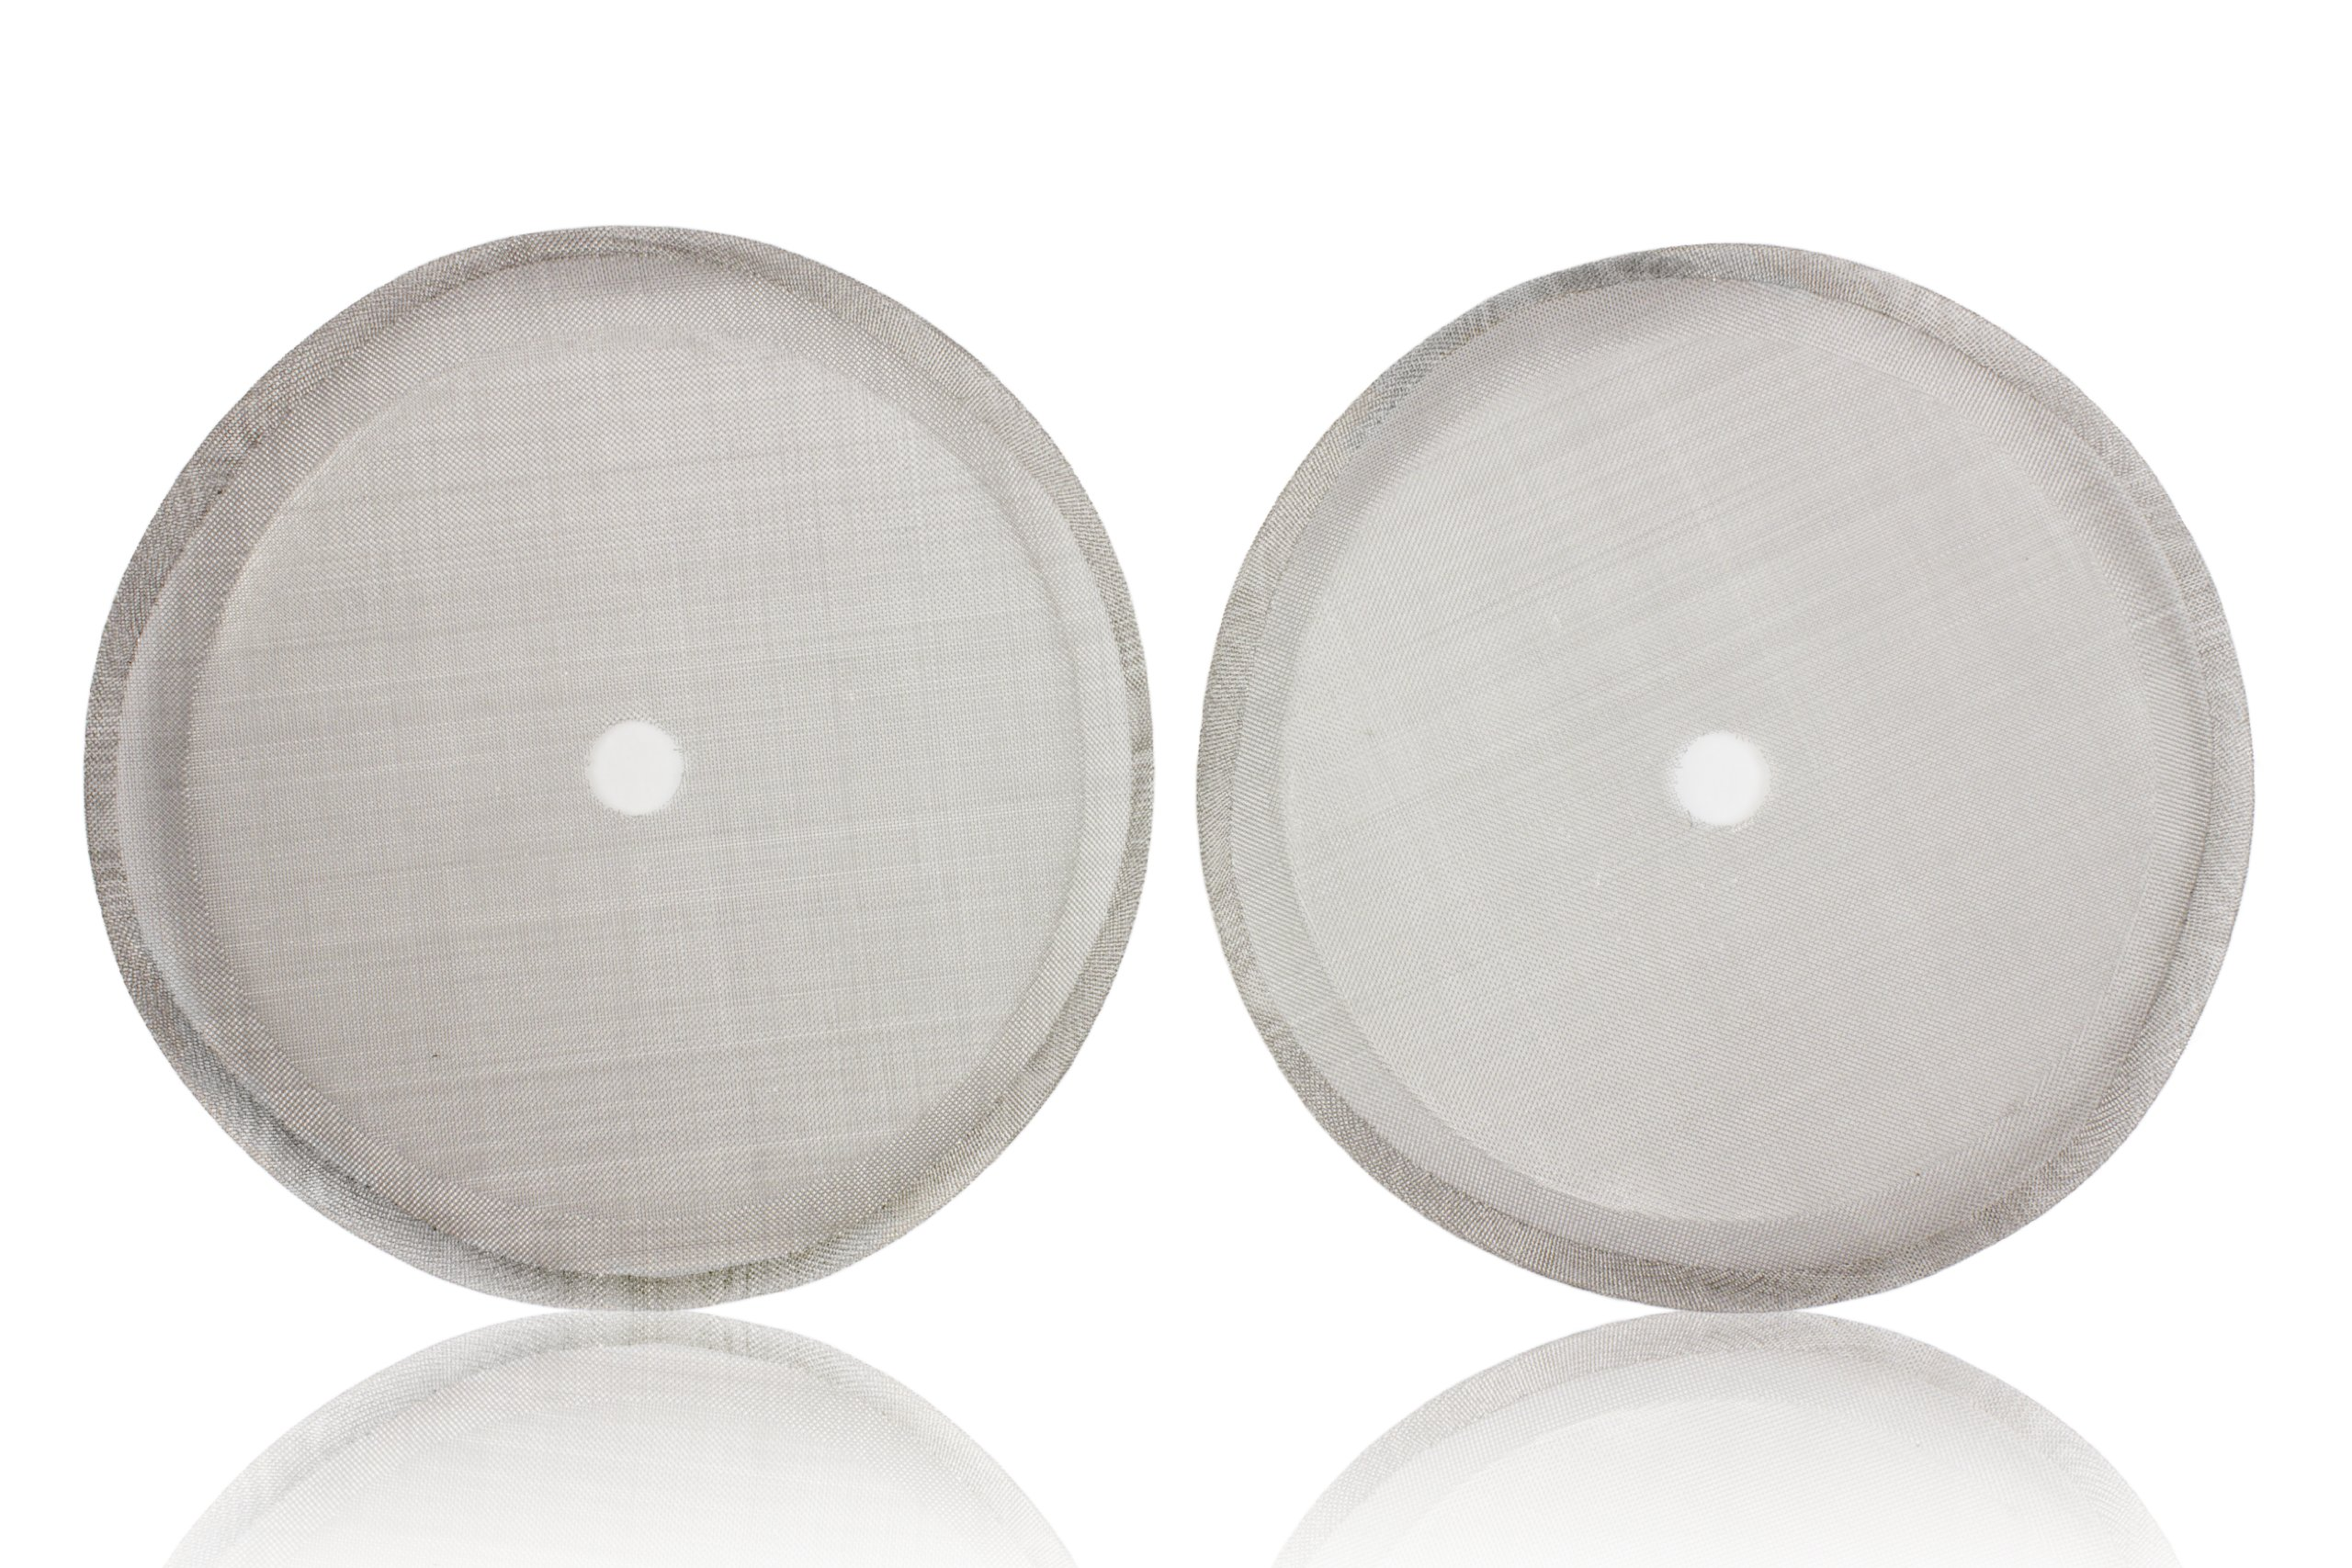 Coffee Press Replacement Screen Parts, 2 Pack Universal 8-Cup Stainless Steel Reusable Filter